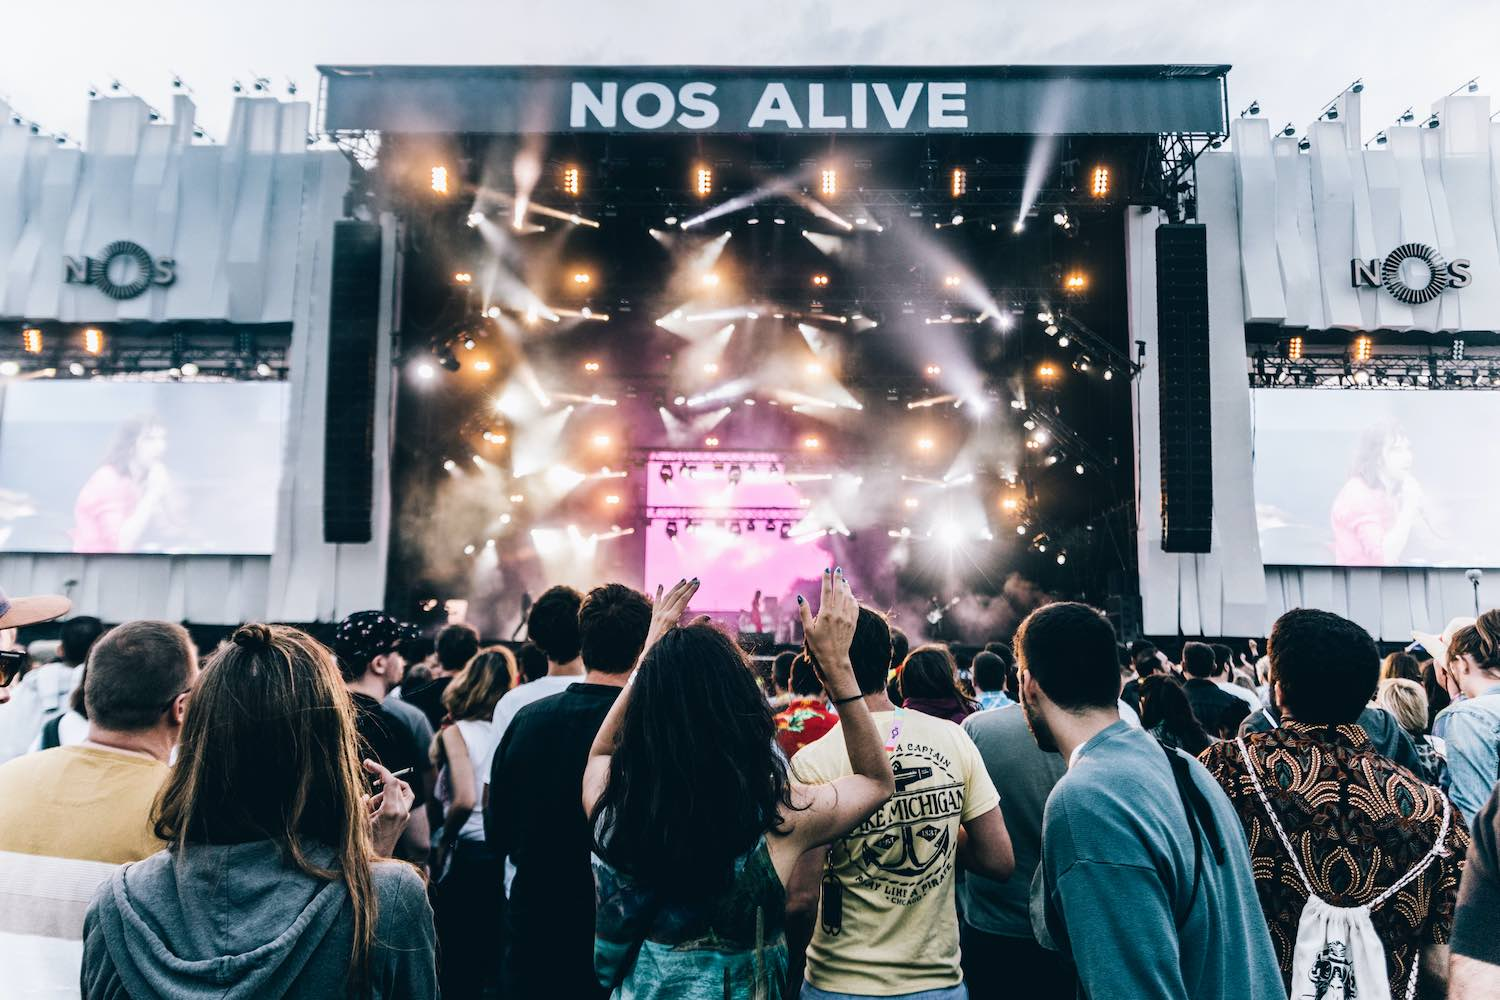 Nos Alive - Portugal - Best Music Festivals in Europe 2020.